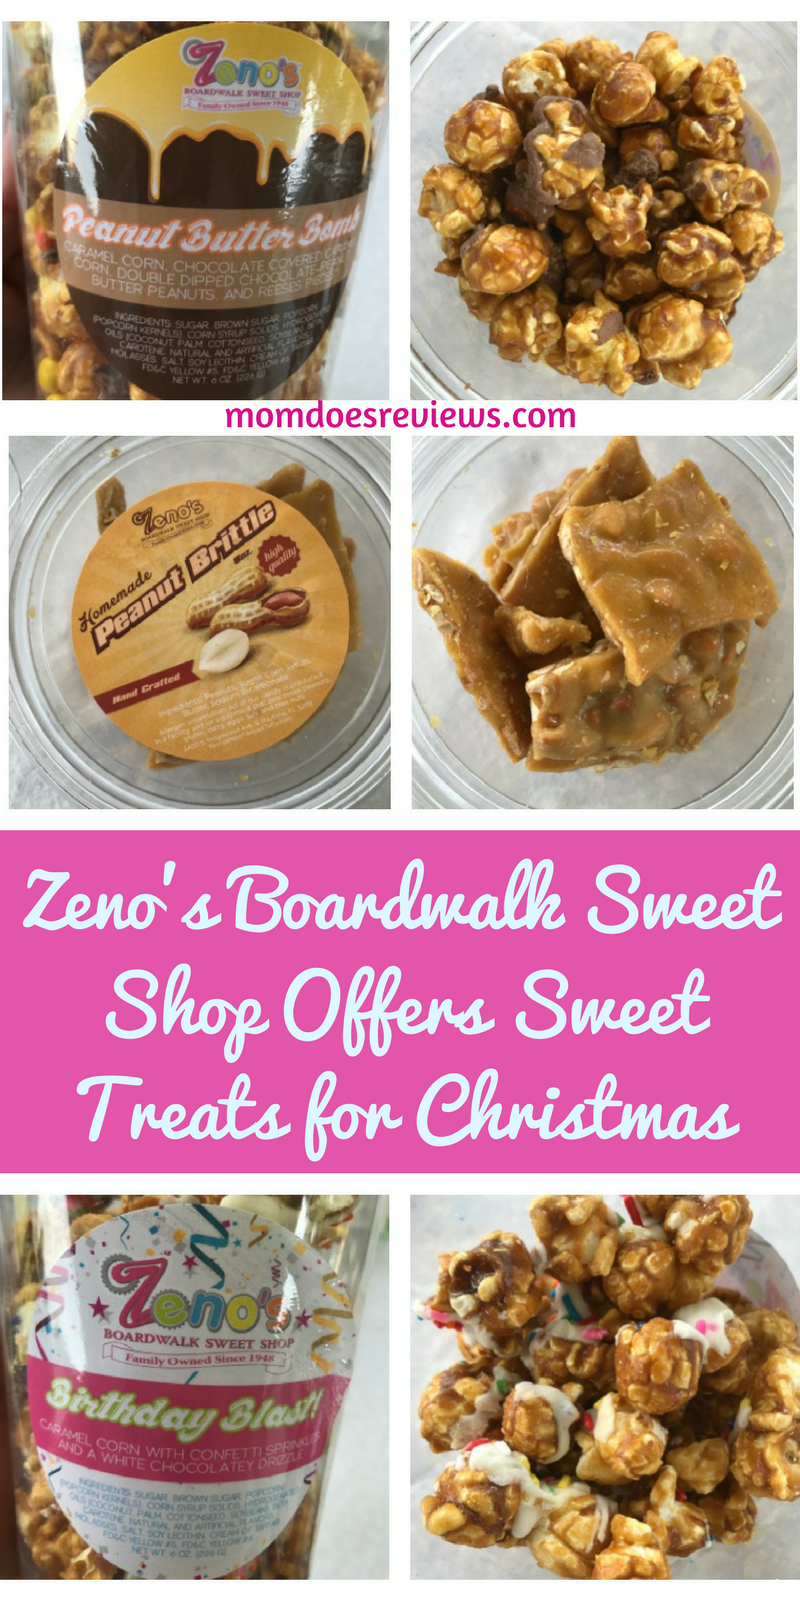 Zeno's Boardwalk Sweet Shop Offers Sweet Treats for Christmas